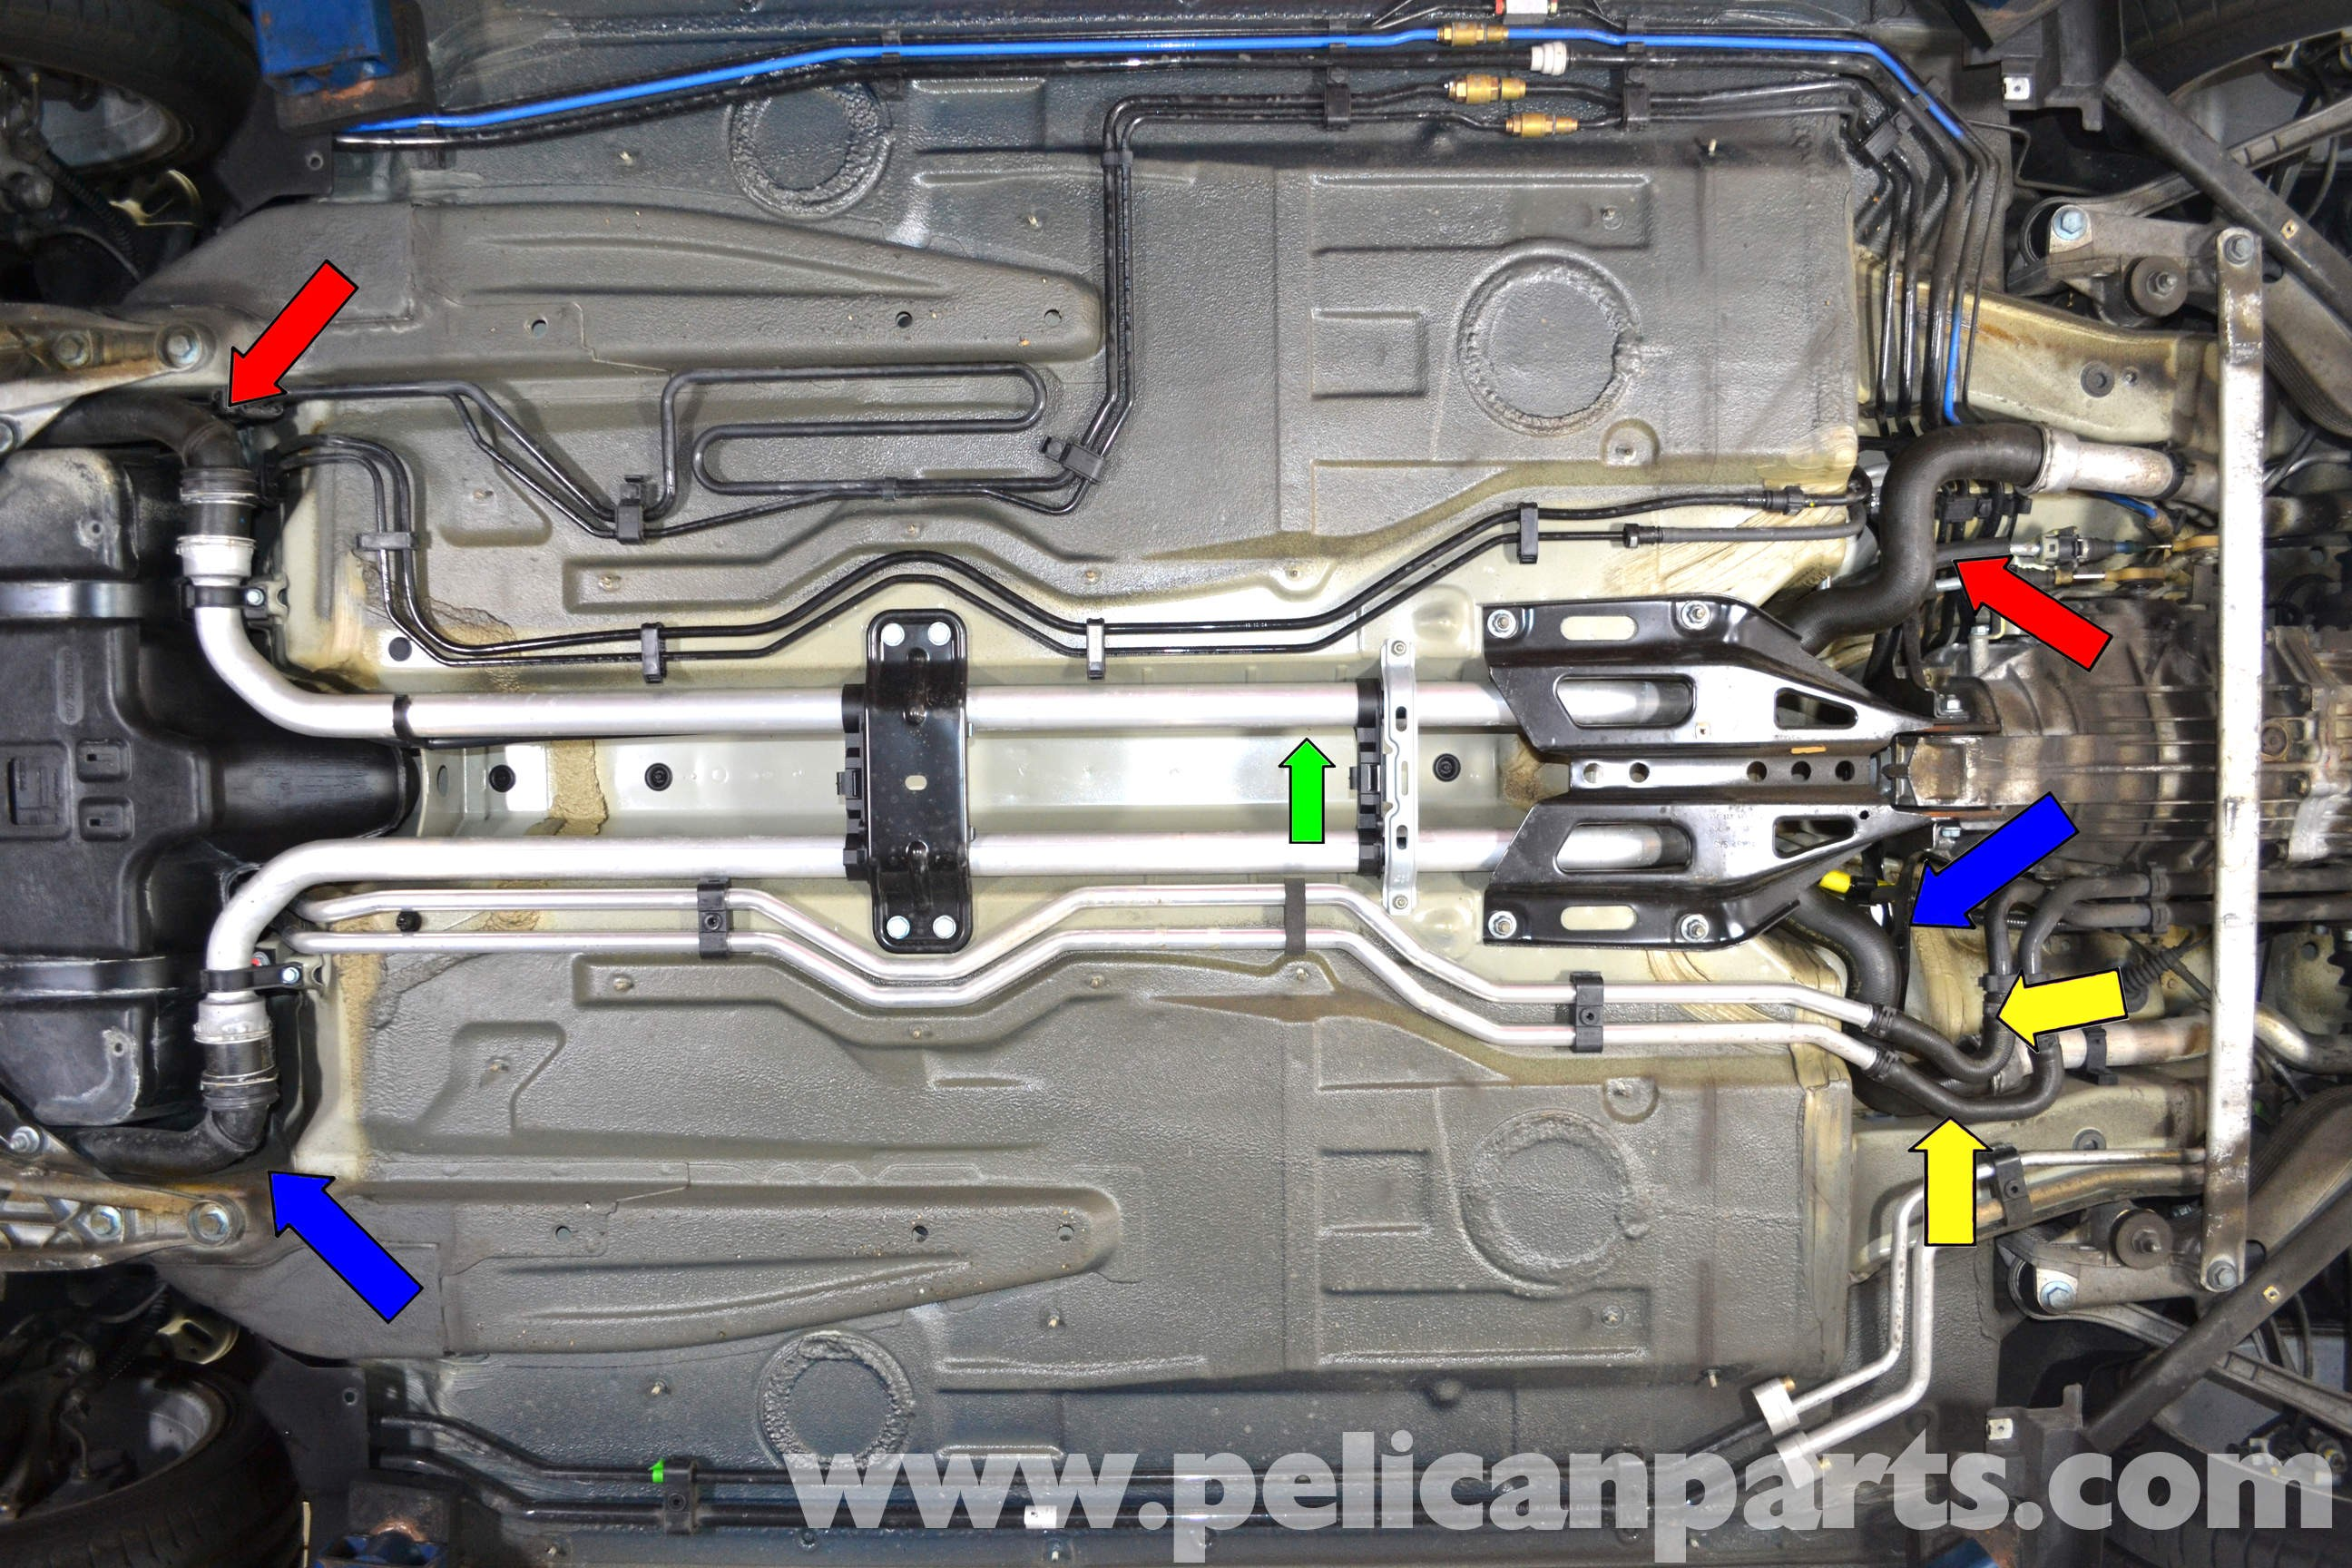 Engine Coolant Flow Diagram Porsche 911 Carrera Coolant Hose Replacement 996 1998 2005 997 Of Engine Coolant Flow Diagram